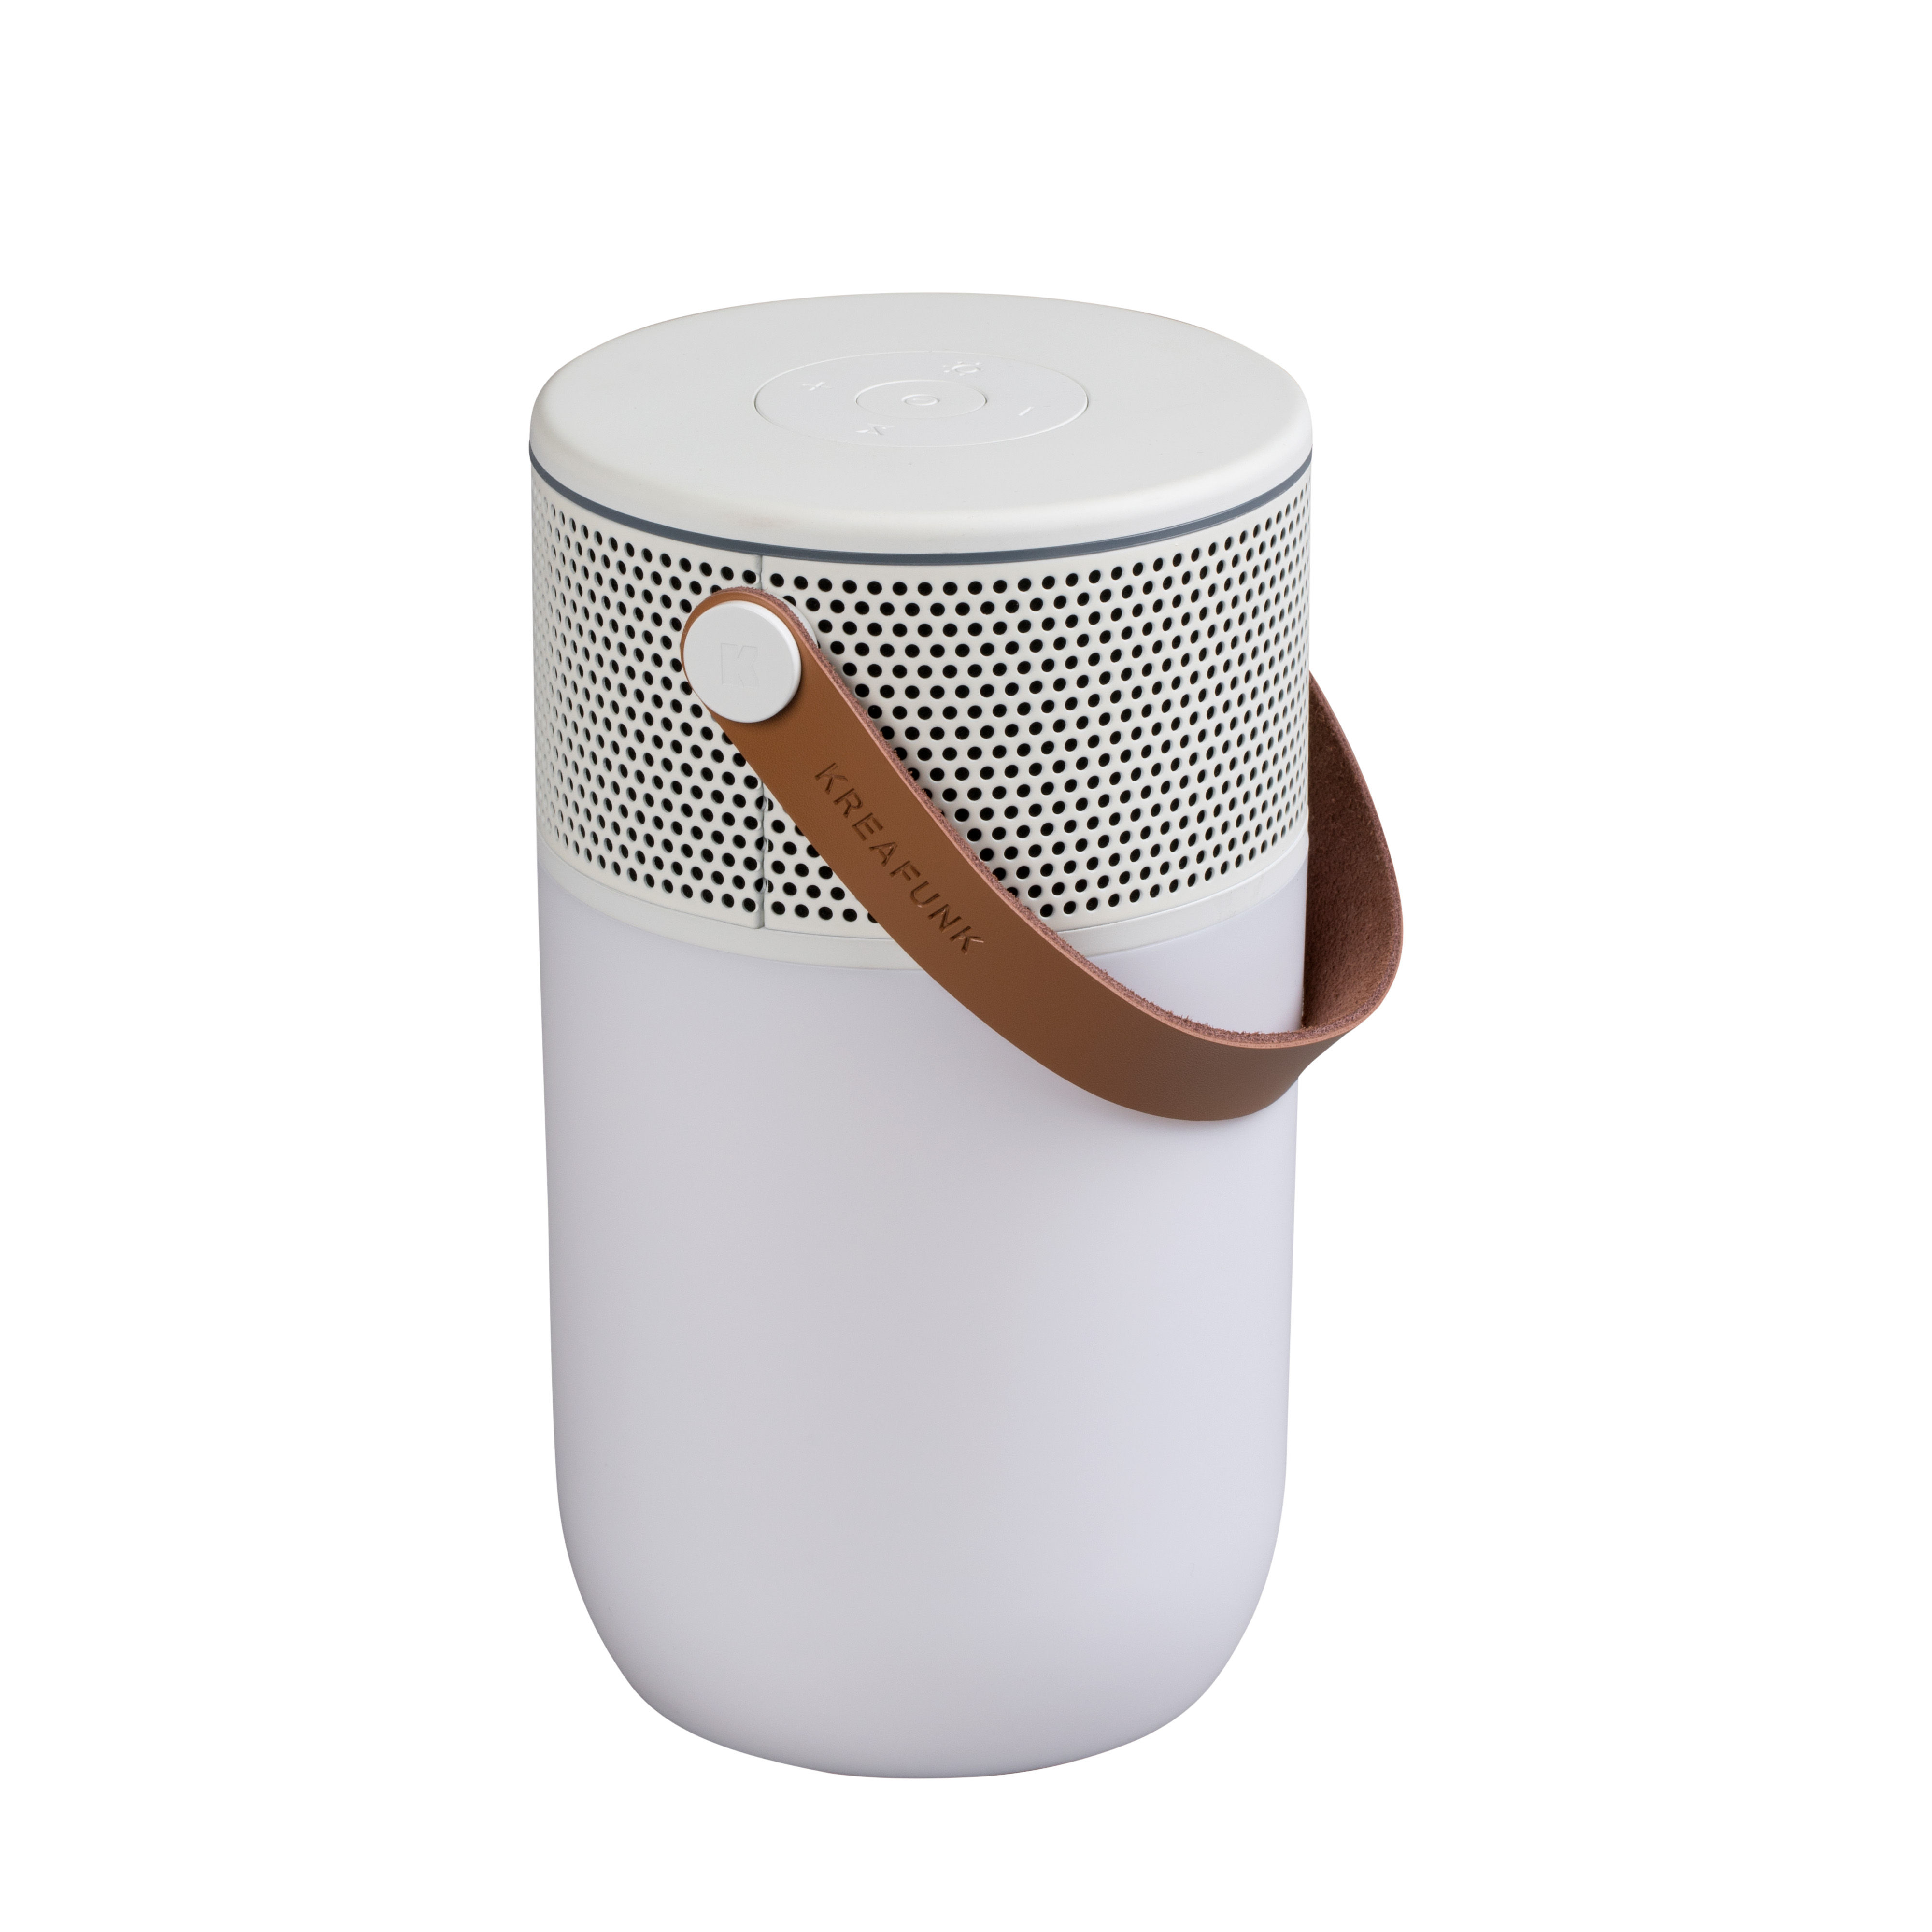 Accessories - Speakers & Audio - aGlow Bluetooth speaker - LED table lamp - Wireless by Kreafunk - White - Plastic material